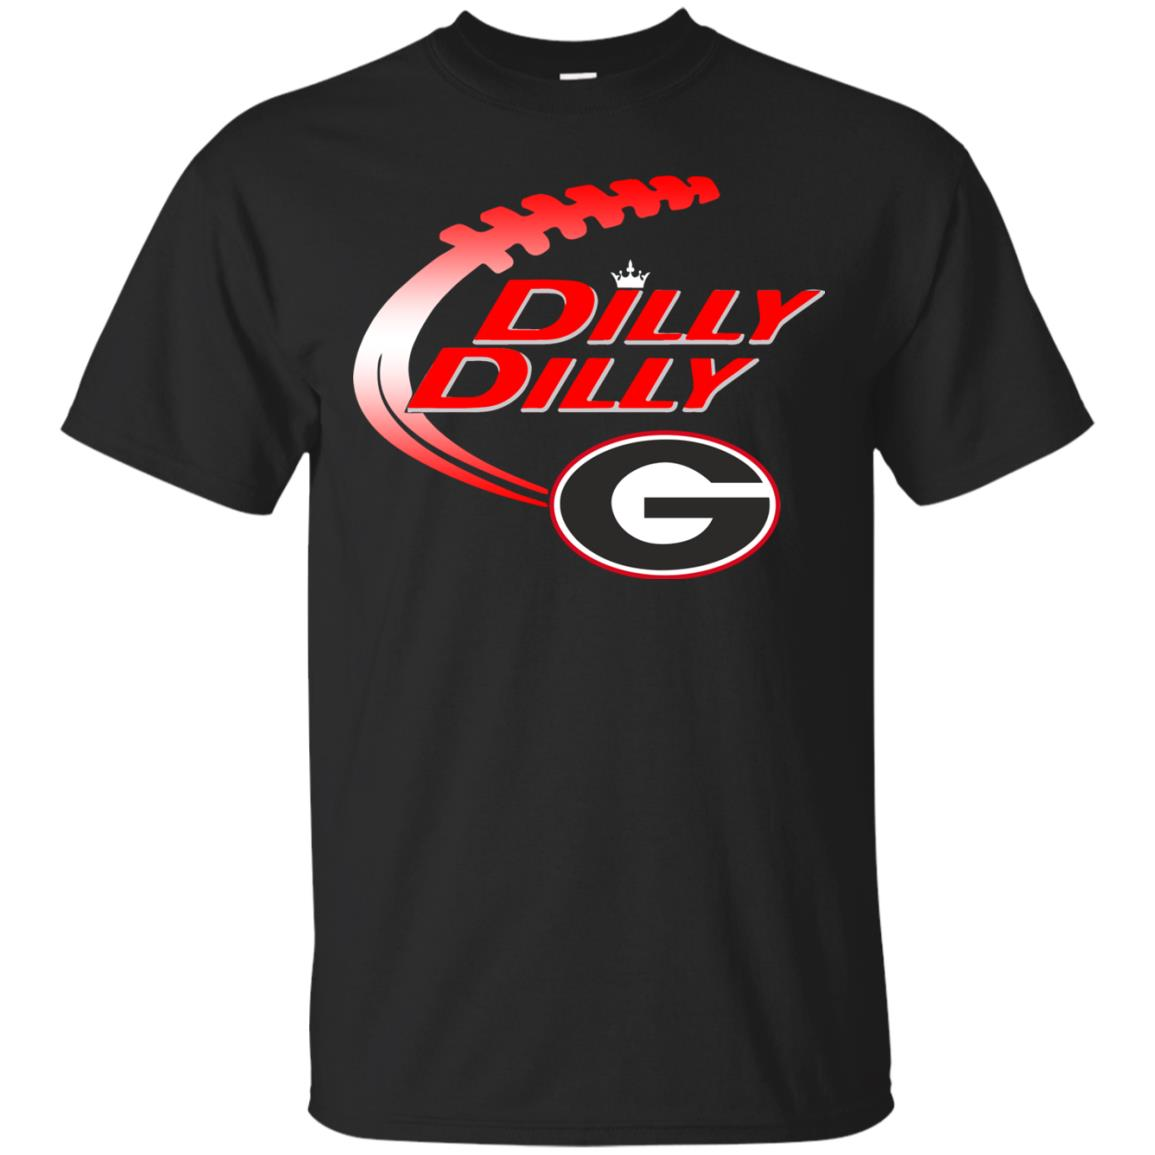 georgia bulldog t shirts dilly dilly georgia bulldog shirt sweatshirt rockatee 9579